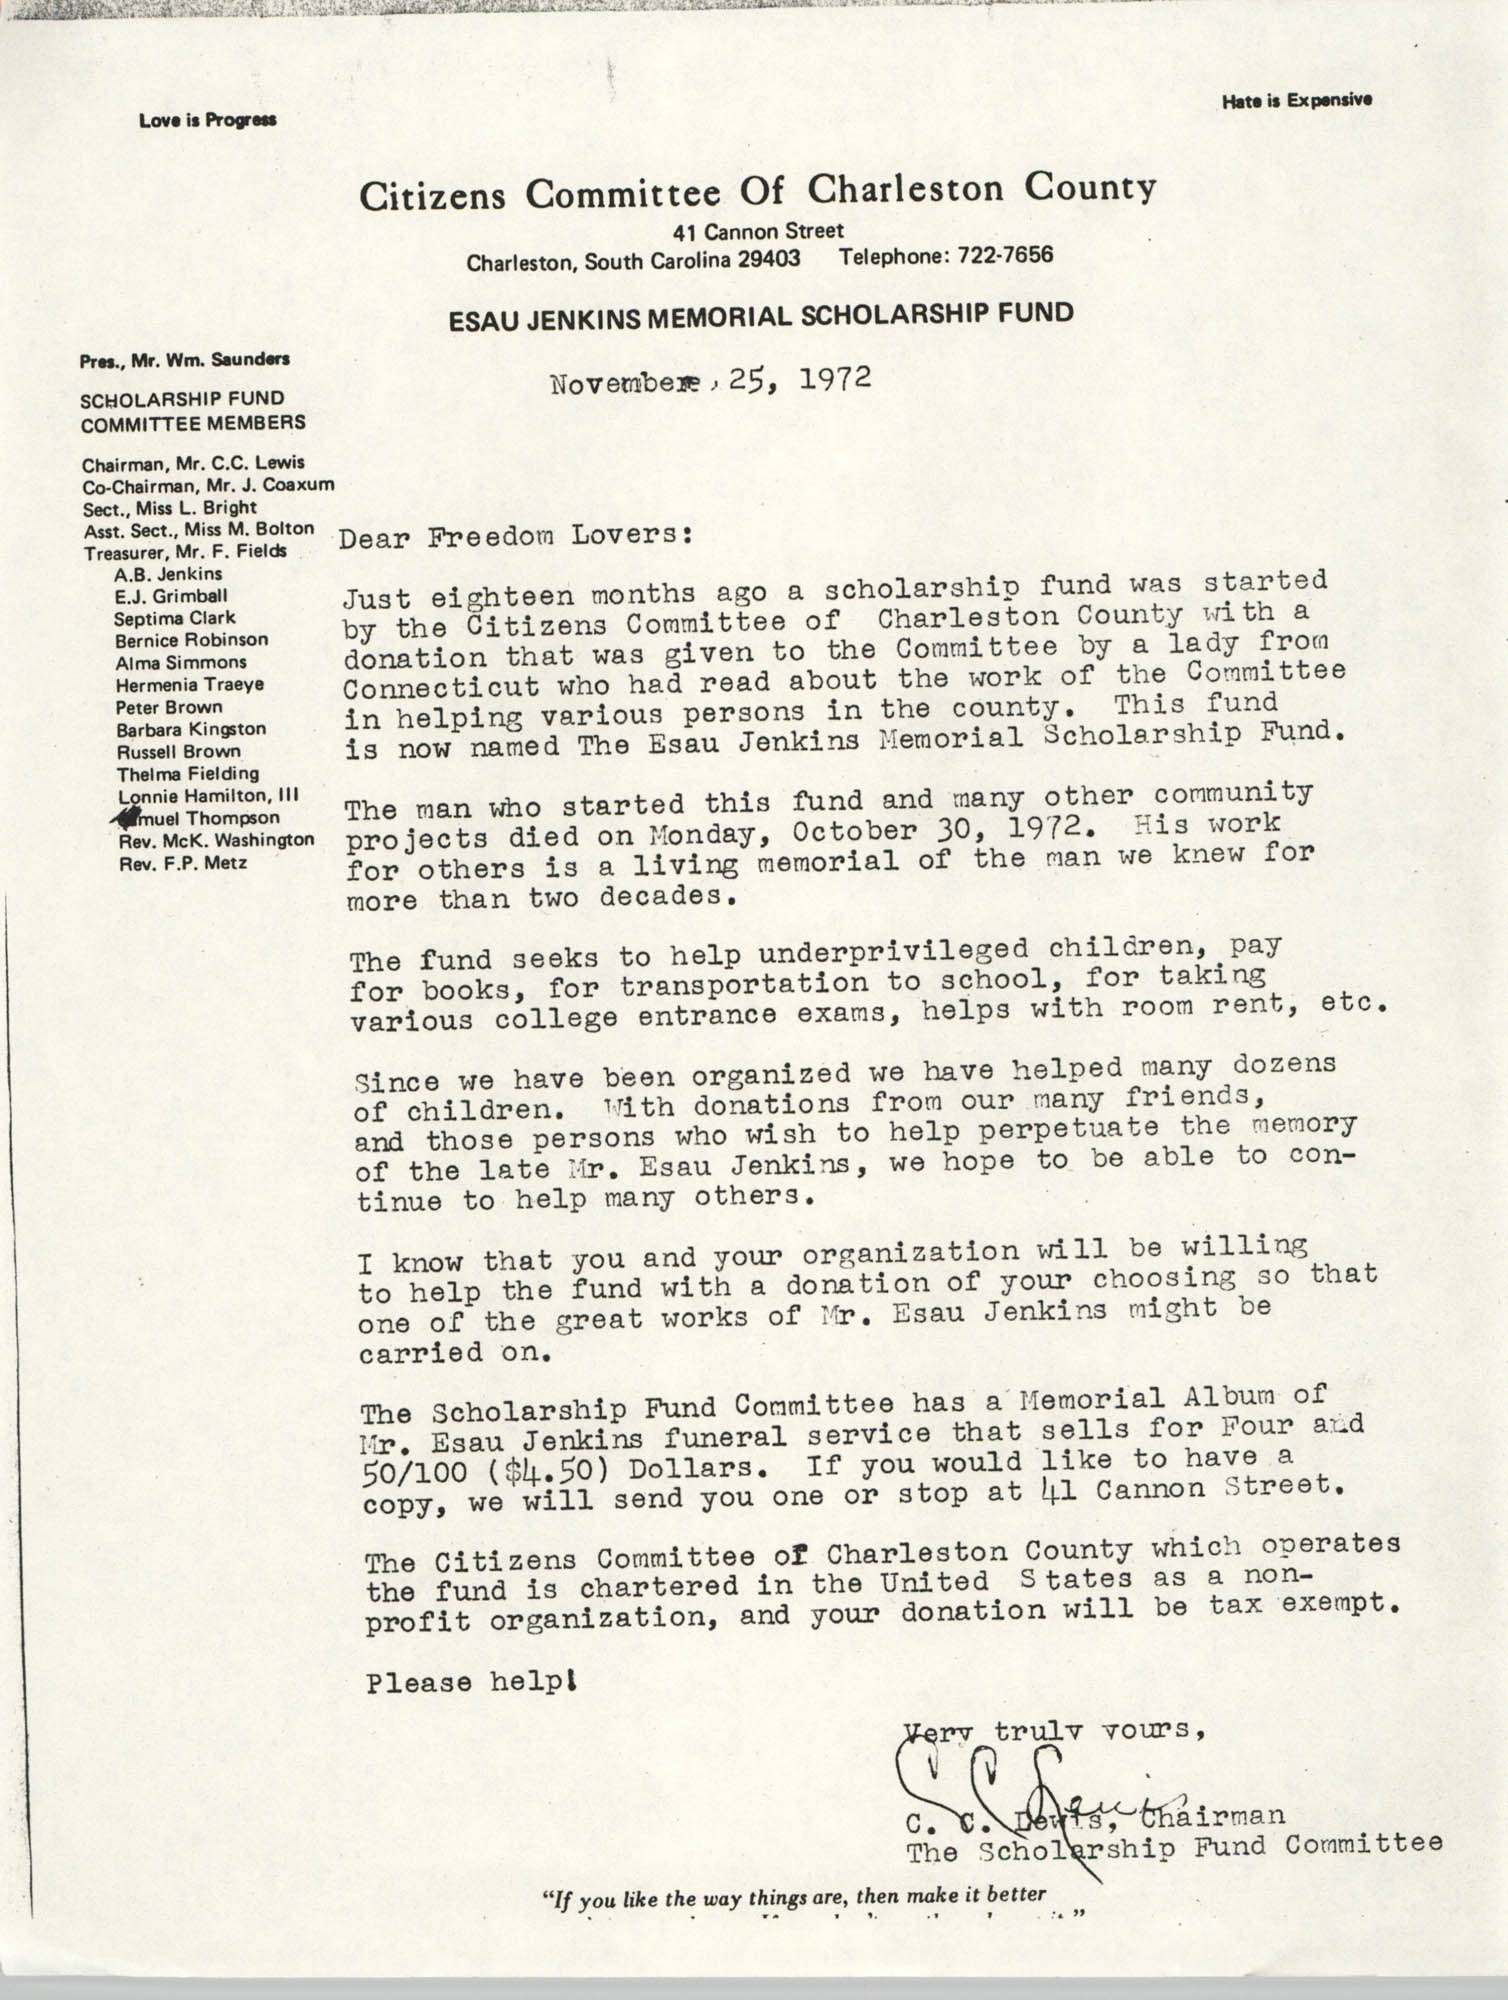 Esau Jenkins Memorial Scholarship Fund Correspondence, November 25, 1972